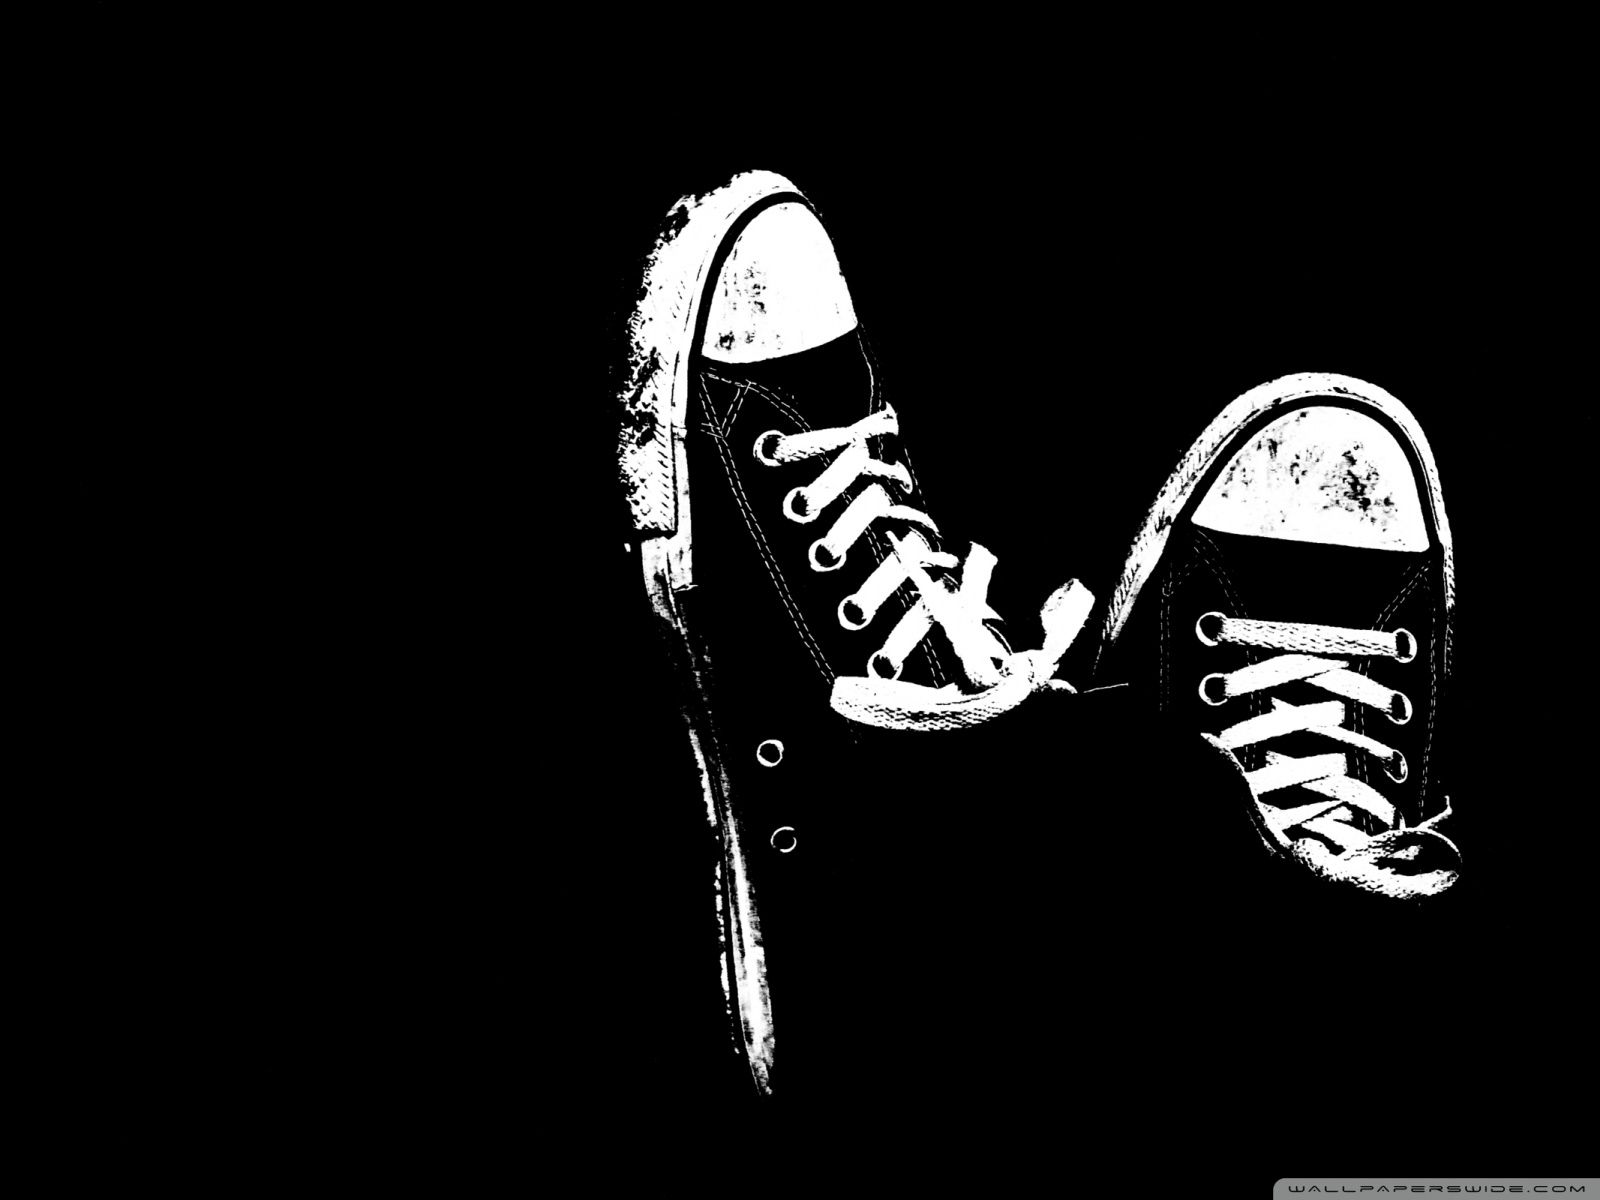 Sneakers Black And White Hd Desktop Wallpaper High Definition Fullscreen Mobile Black Hd Wallpaper Shoes Wallpaper Black And White Wallpaper Iphone